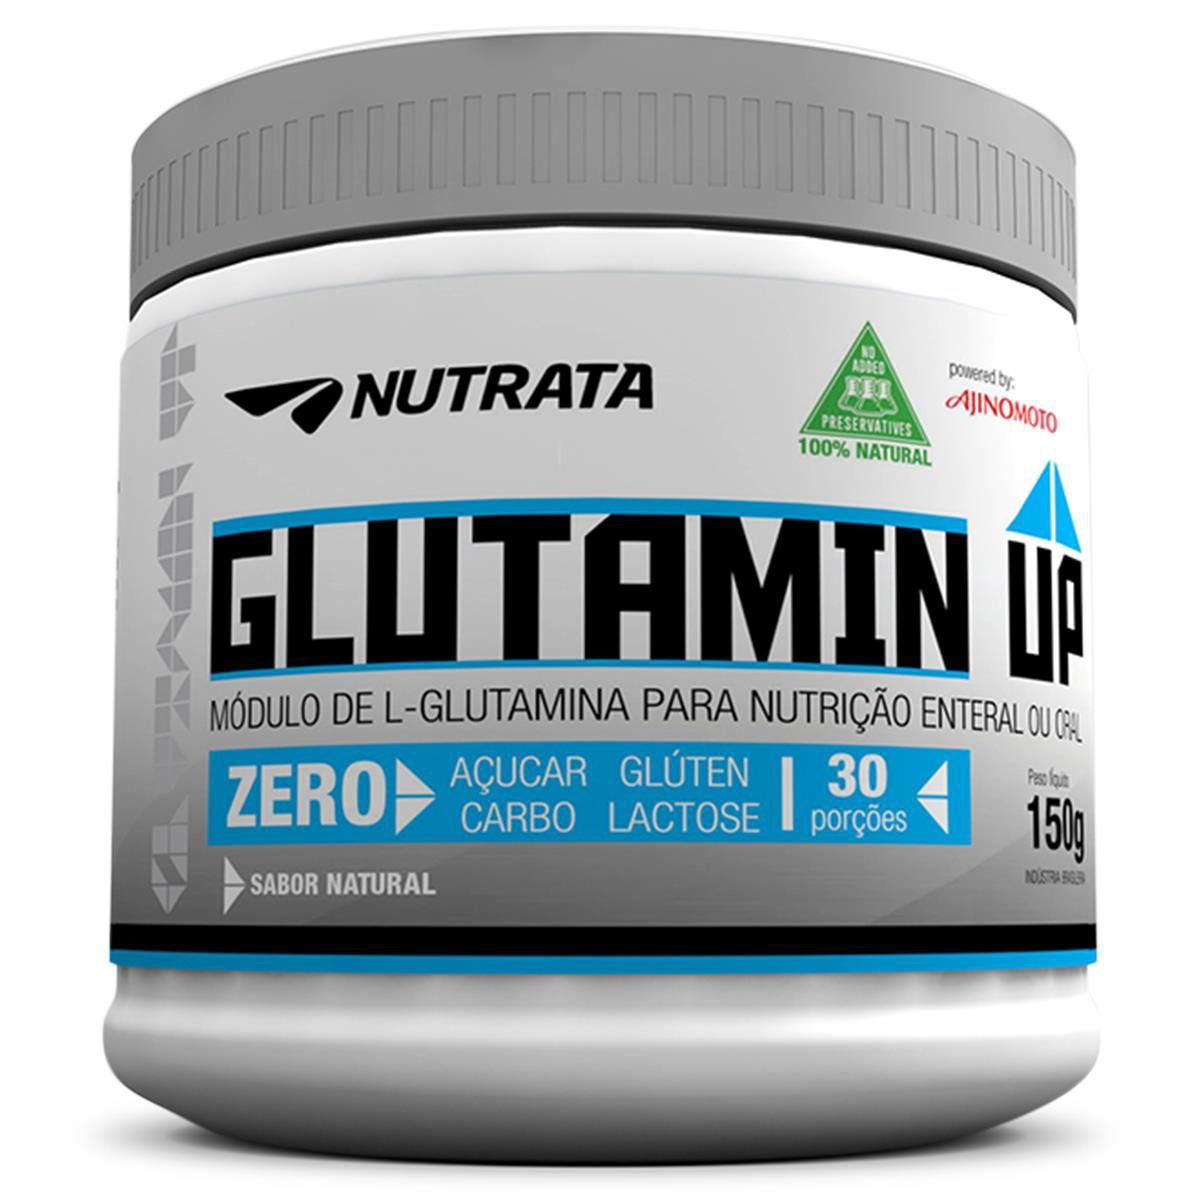 Glutamin Up 150g Nutrata  - Vitta Gold